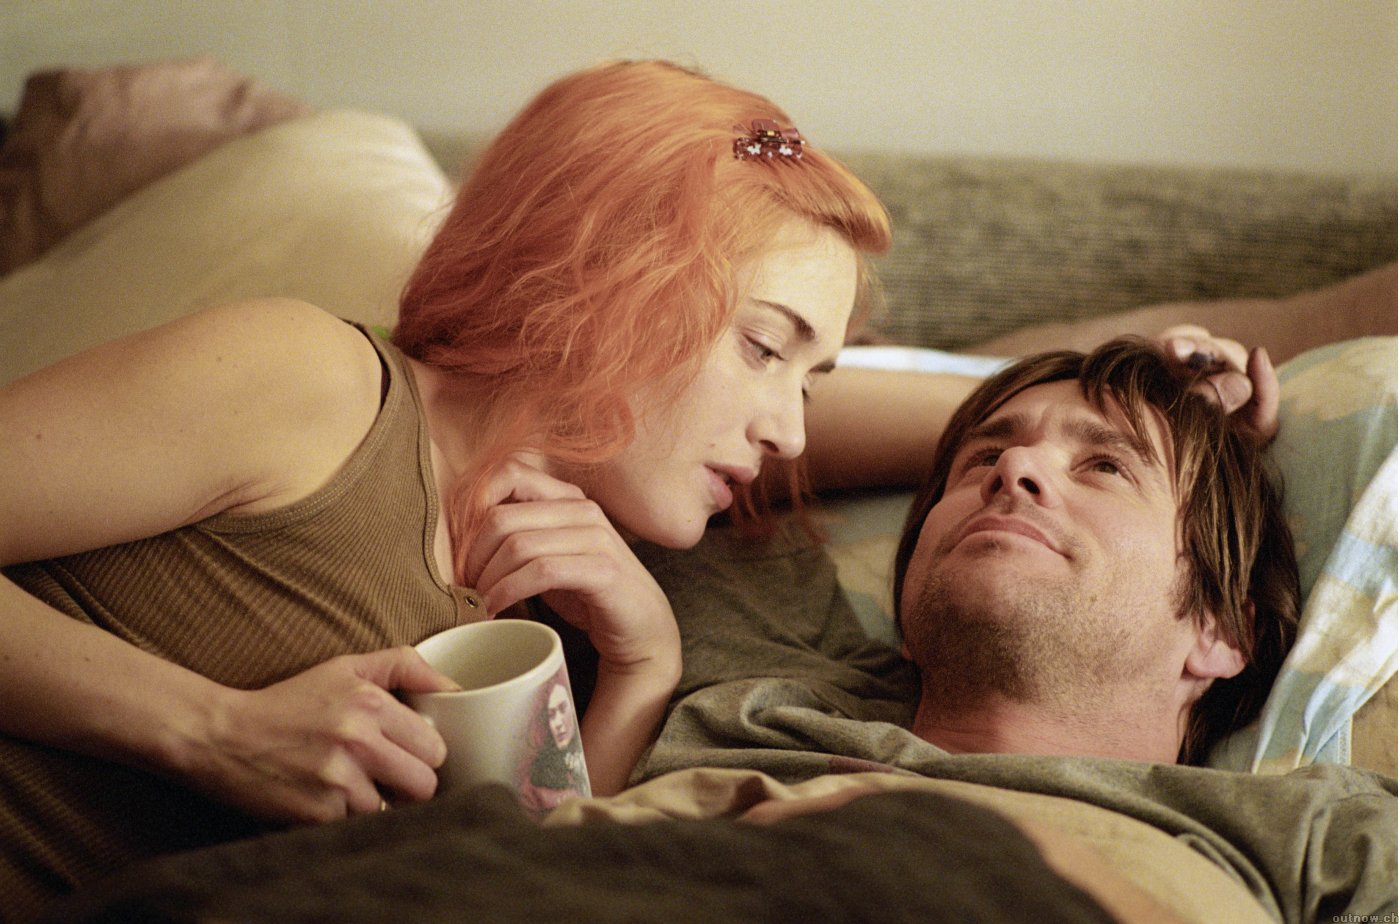 salah satu adegan di Eternal Sunshine of a Spotless Mind